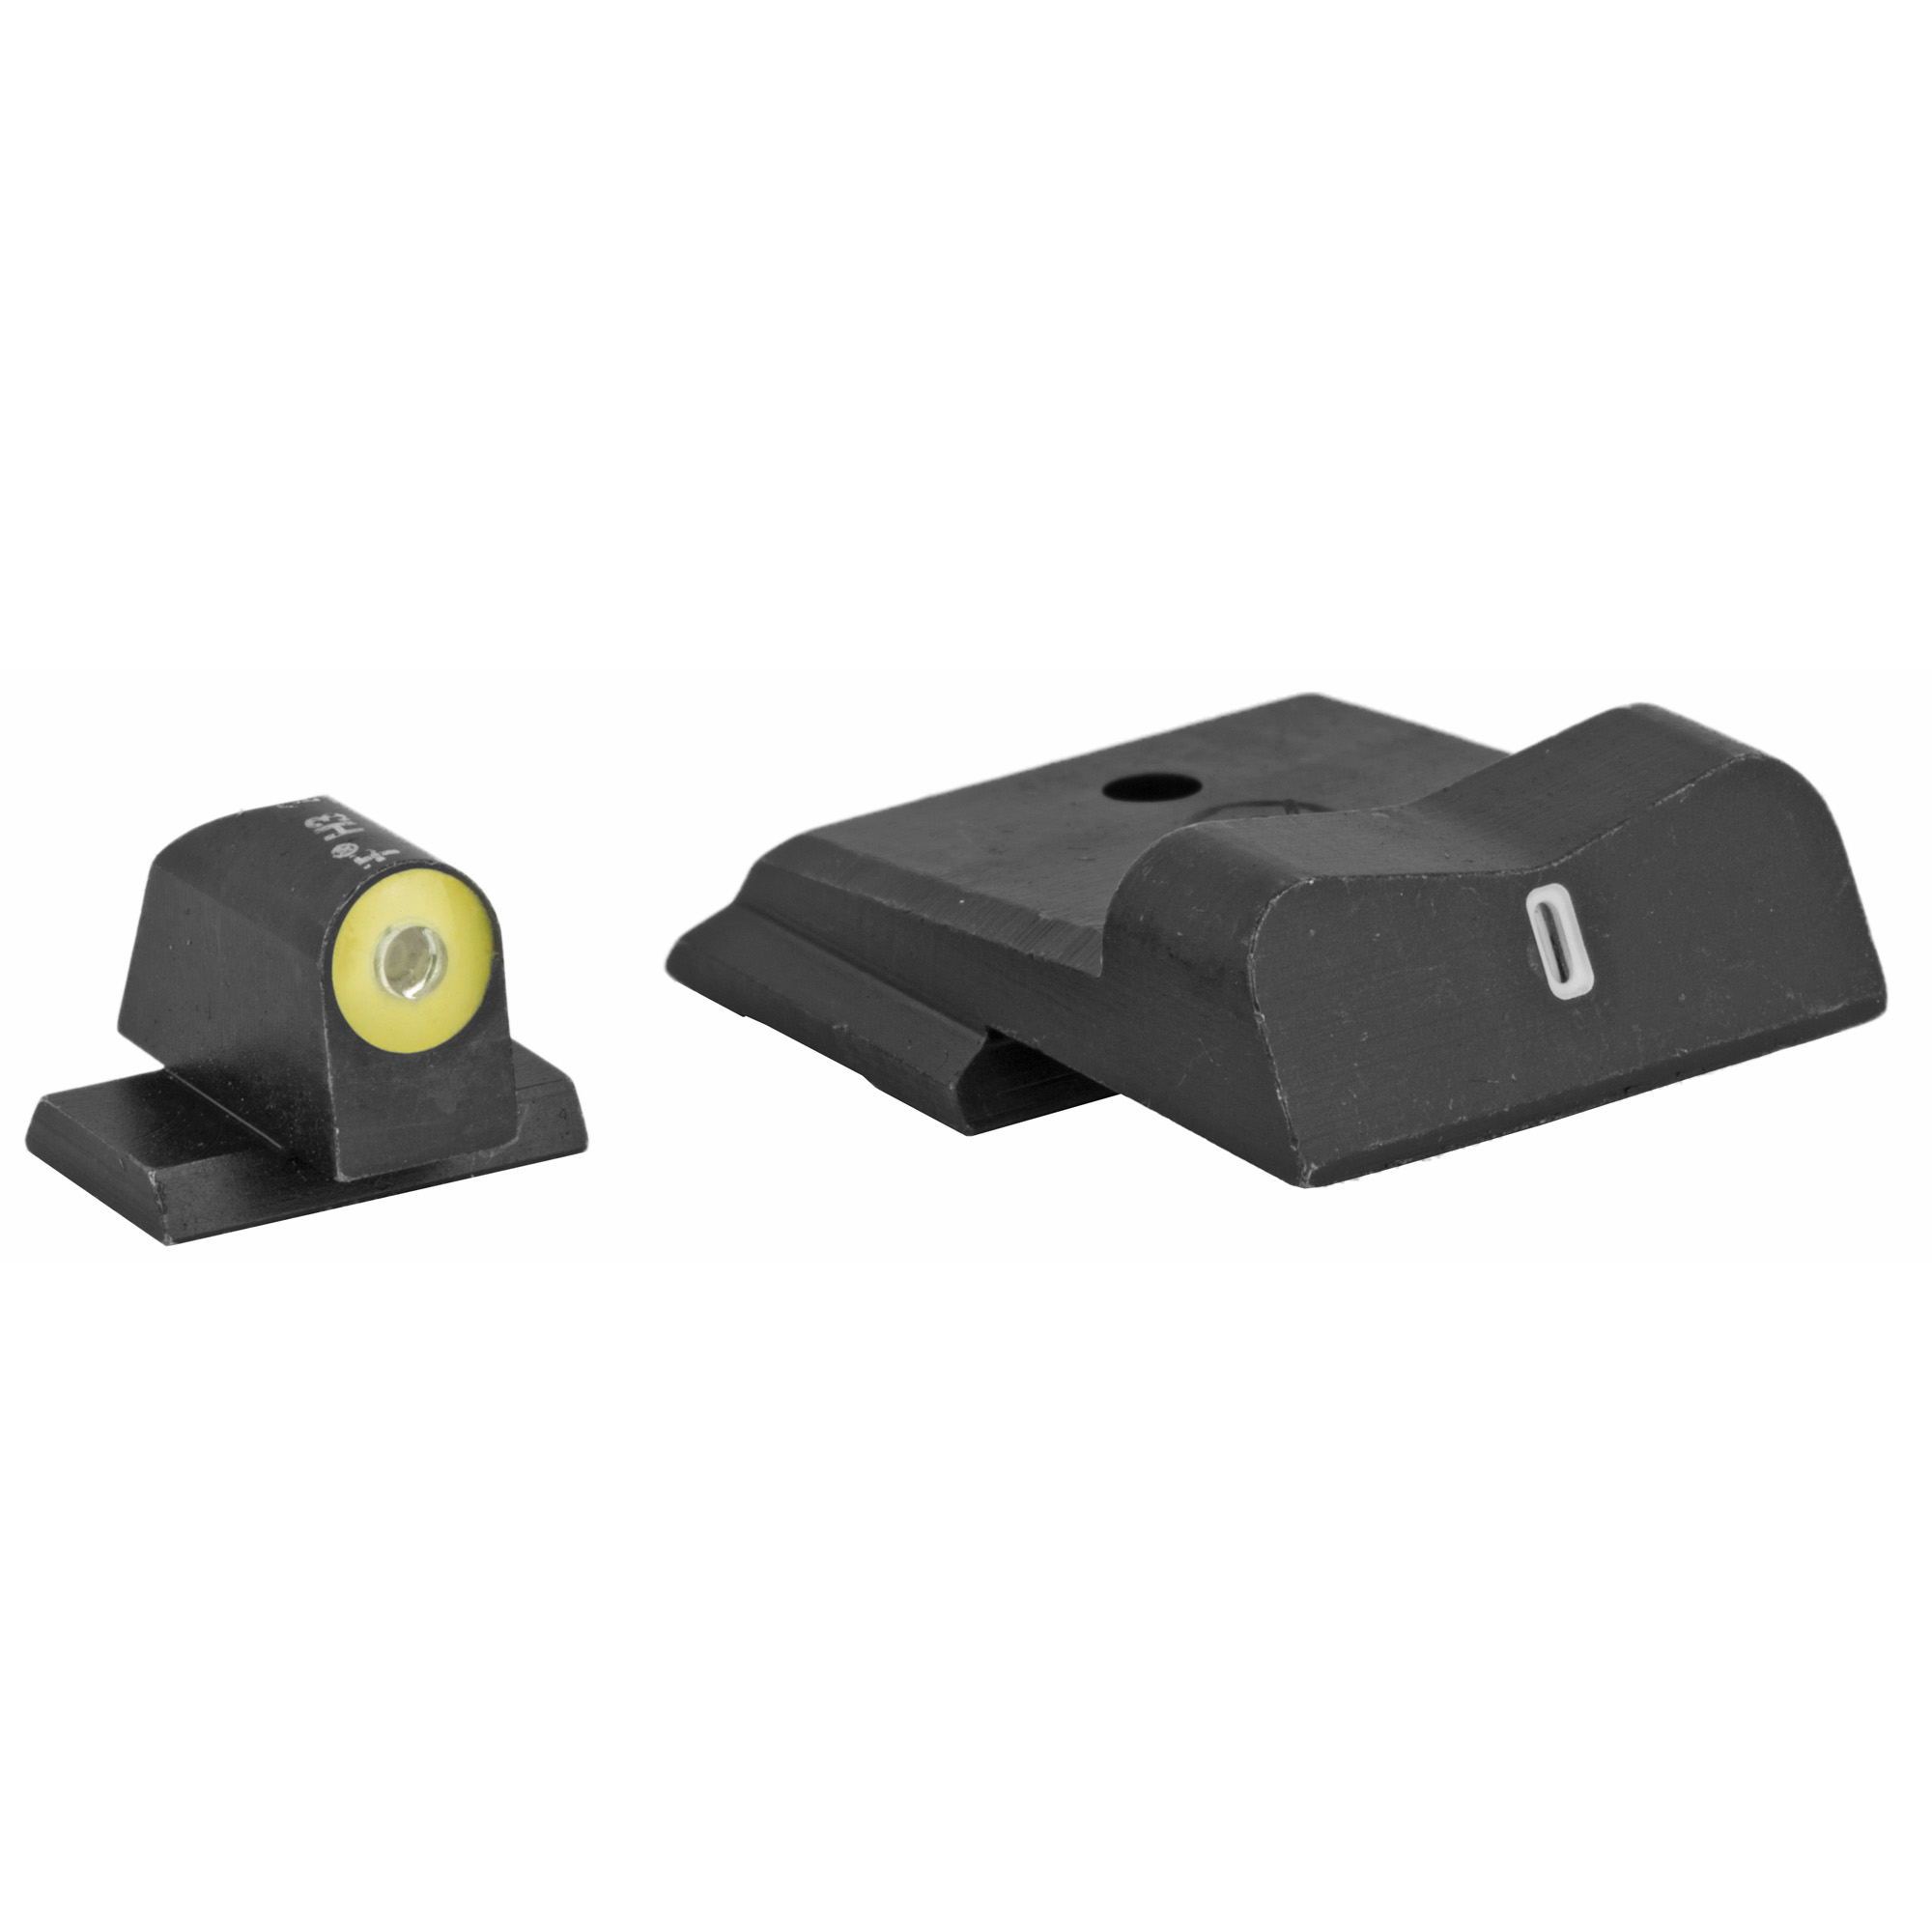 "XS DXT2 Big Dot Night Sights offer the best front sight visibility in all lighting conditions. DXT2 Big Dot sights drive focus to the front sight using a high-contrast front and a V-notch rear for an unobstructed view of the front sight. DXT2 Big Dot front sights use a patent pending glow dot that absorbs light and glows in low light levels before it is dark enough to see the tritium. Optic Yellow is the best option for low light and has the brightest glow intensity. Primarily based on the white light spectrum"" optic yellow is very reflective and will excite the photoluminescent properties of the dot faster than any other color. The increased surface area of the convex dot increases light absorption"" intensifying the charge of the glow properties of the dot. The dot-the ""i"" sight picture"" with a tritium dot in the front sight and a tritium bar in the rear"" prevents confusing the front and rear sight in high-stress situations. The wide field of view increases visibility of the front sight and of the threat downrange."